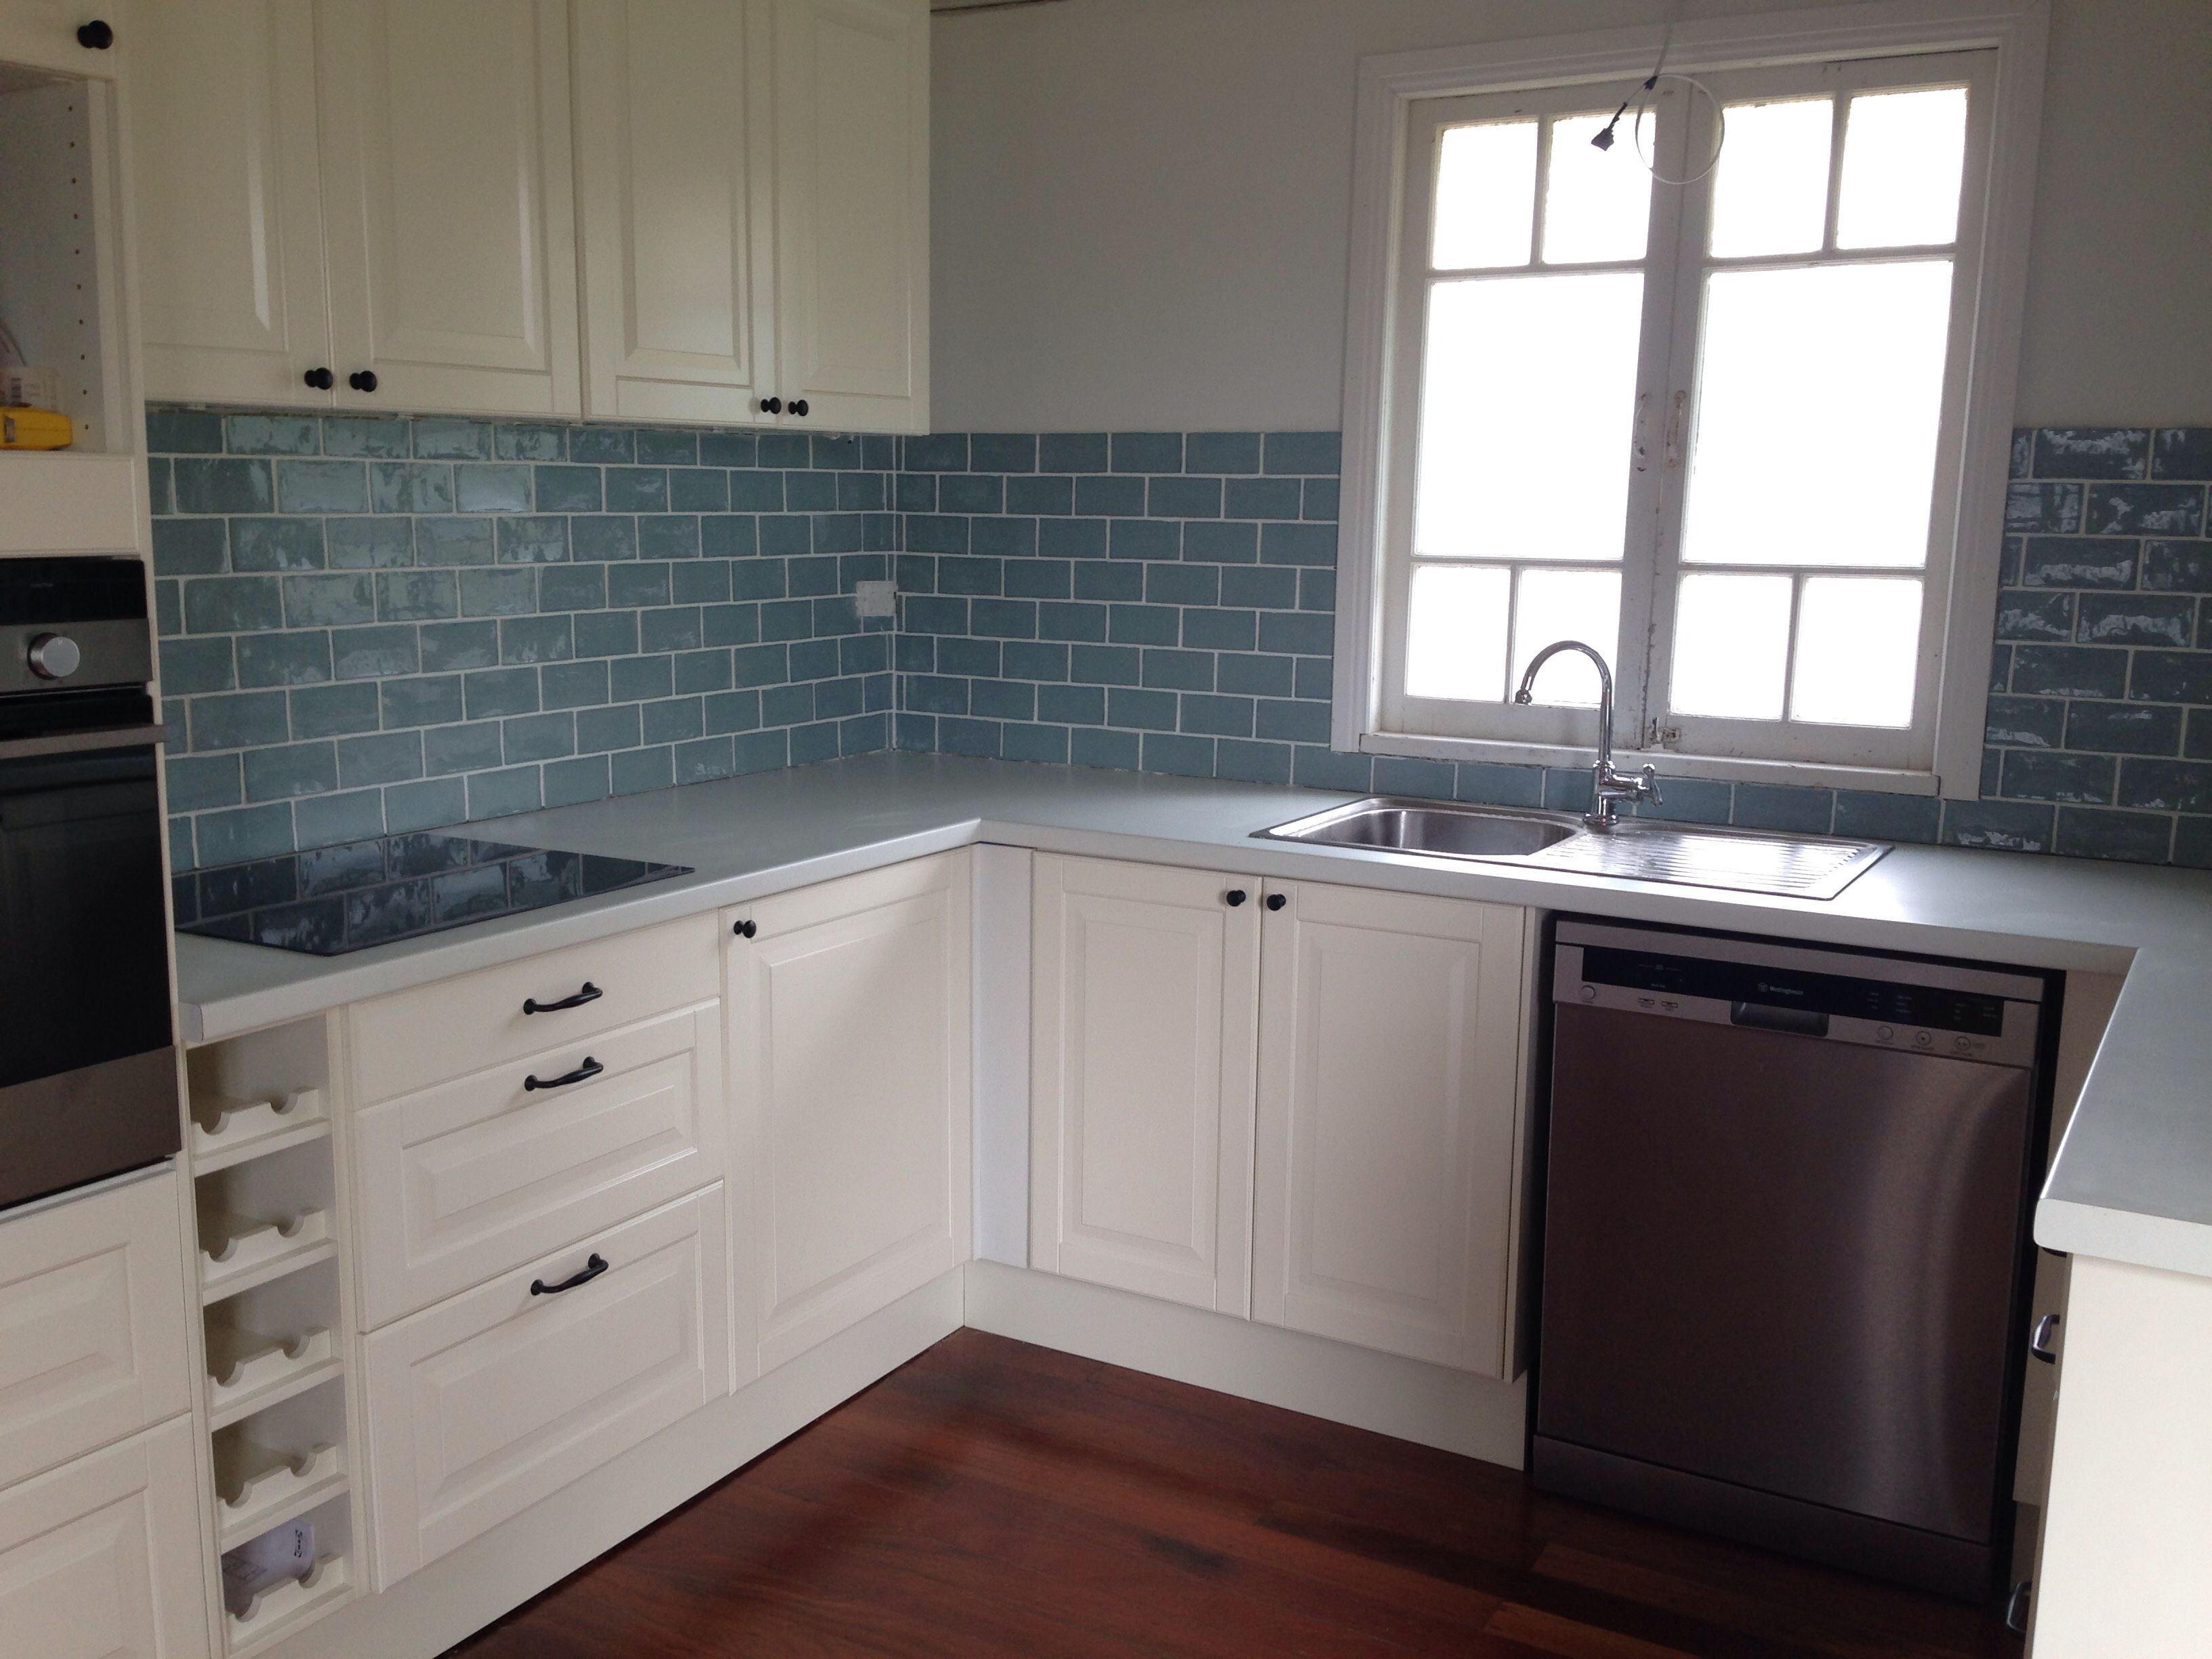 Kitchen Tiled Splashback Duck Egg Blue Splashback Tile Google Search Kitchen